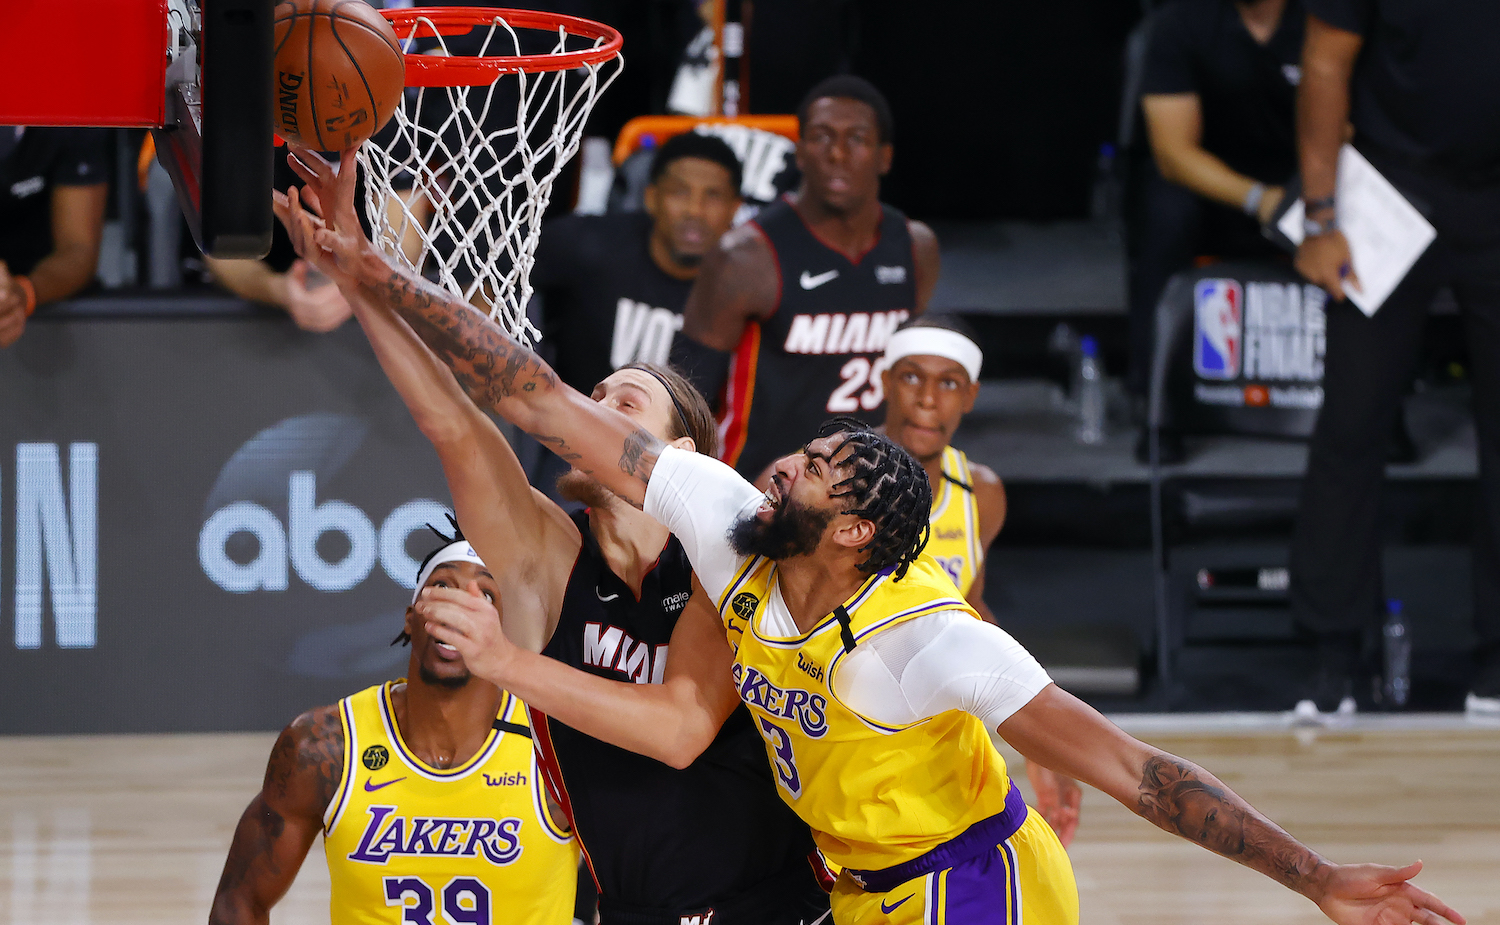 LAKE BUENA VISTA, FLORIDA - OCTOBER 06: Anthony Davis #3 of the Los Angeles Lakers blocks Kelly Olynyk #9 of the Miami Heat during the second quarter in Game Four of the 2020 NBA Finals at AdventHealth Arena at the ESPN Wide World Of Sports Complex on October 6, 2020 in Lake Buena Vista, Florida. NOTE TO USER: User expressly acknowledges and agrees that, by downloading and or using this photograph, User is consenting to the terms and conditions of the Getty Images License Agreement. (Photo by Kevin C. Cox/Getty Images)